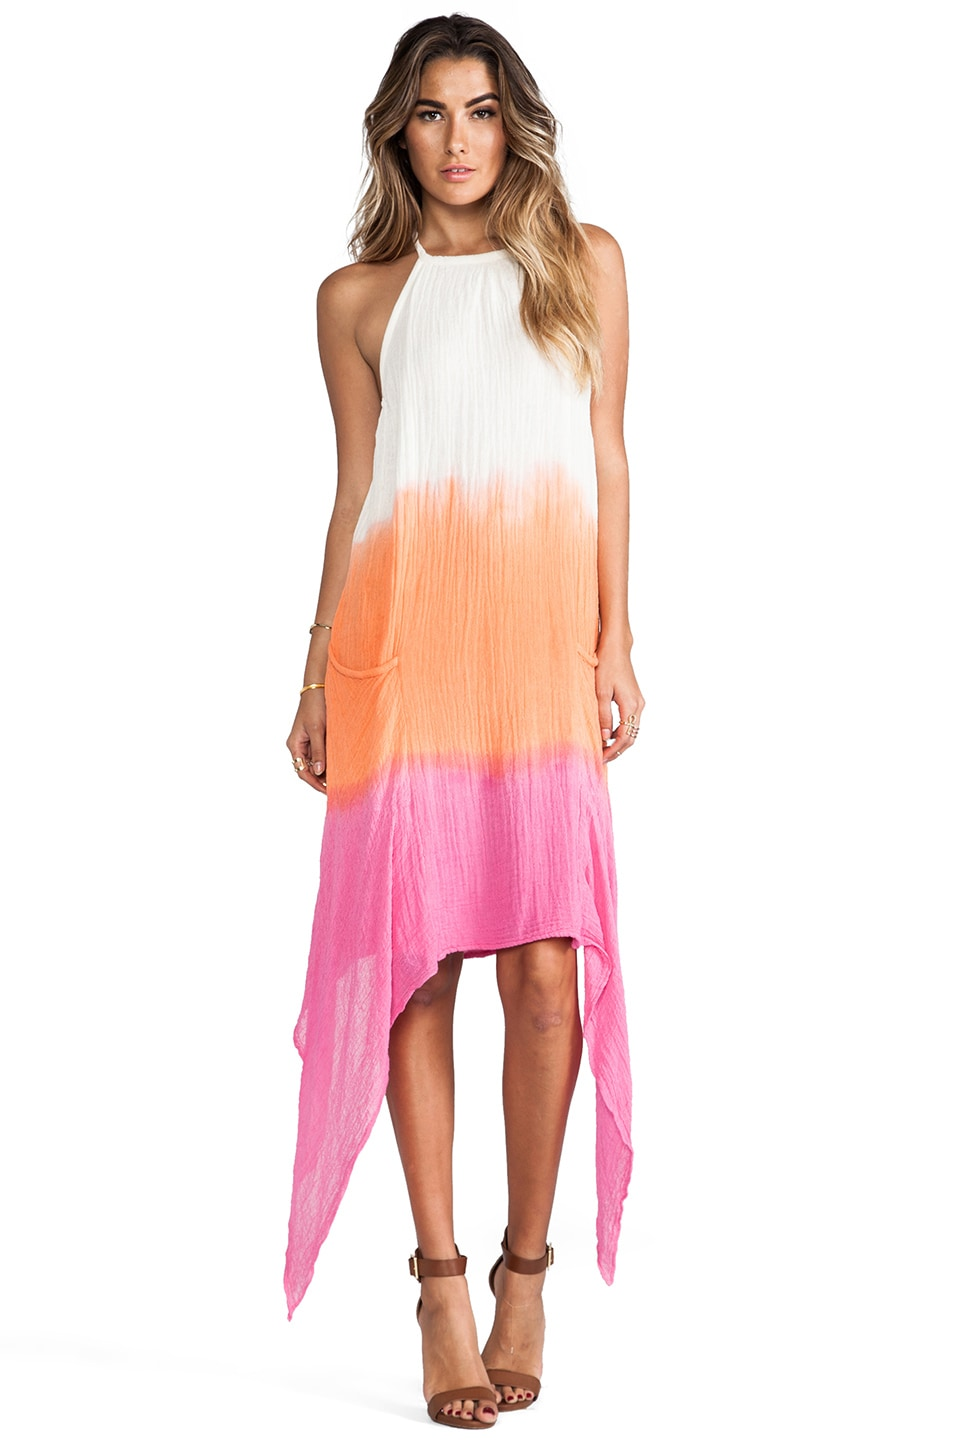 Jen's Pirate Booty Hold On Maxi Dress in Fade #3